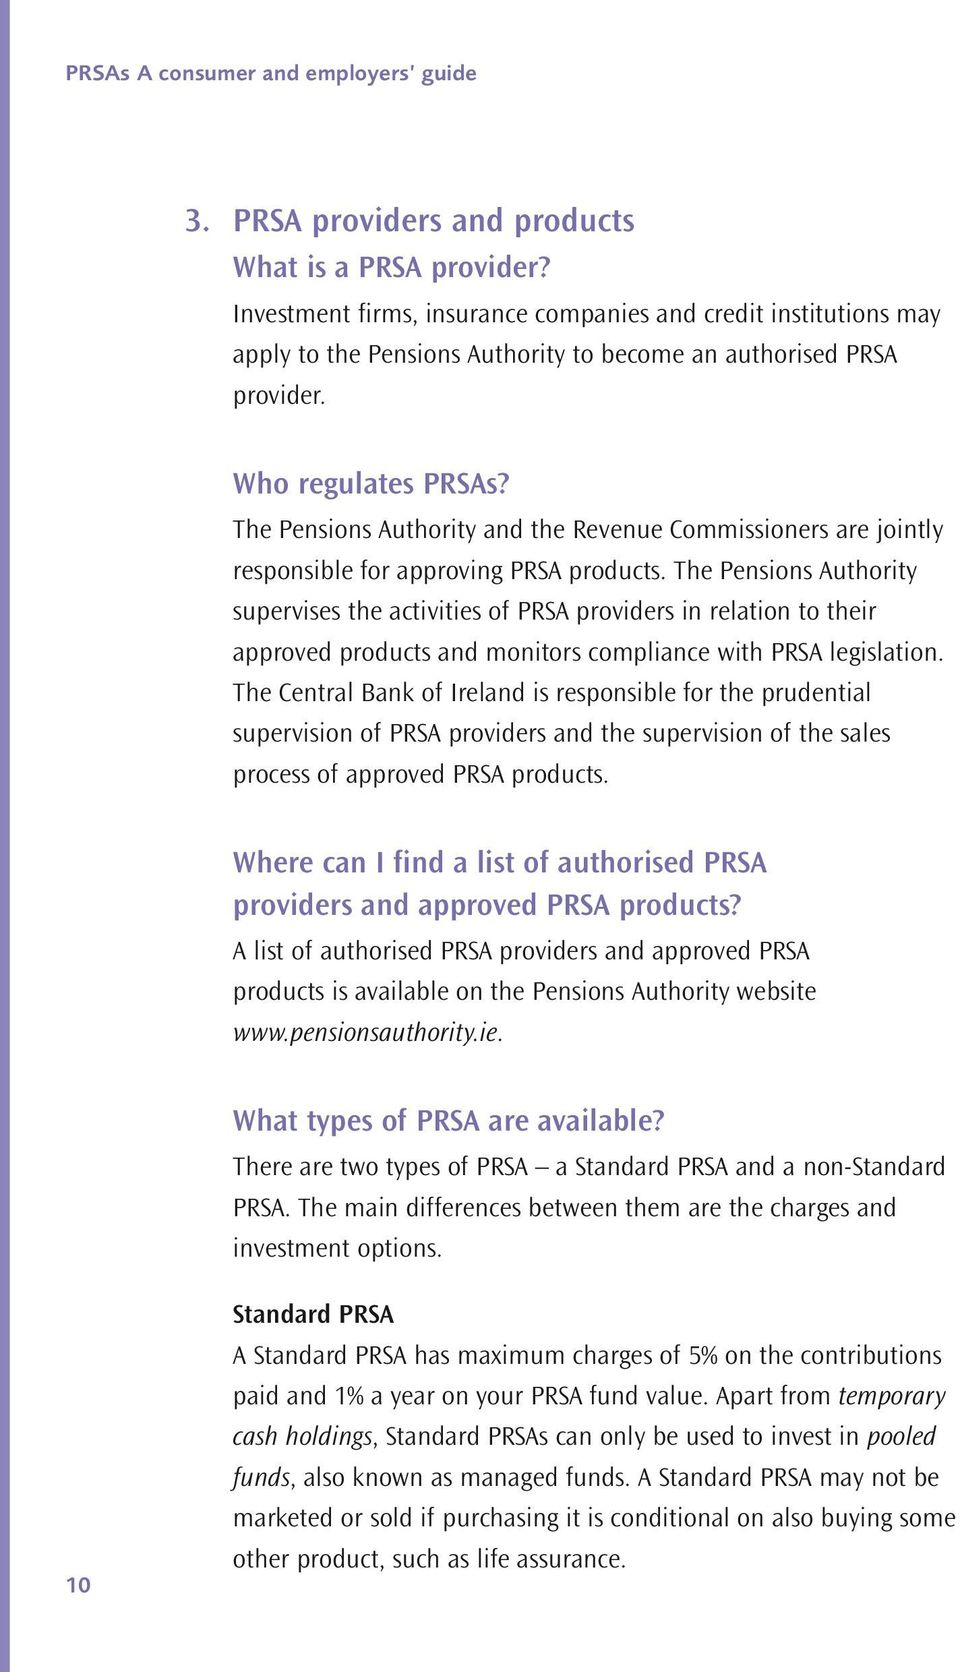 The Pesios Authority ad the Reveue Commissioers are joitly resposible for approvig PRSA products.